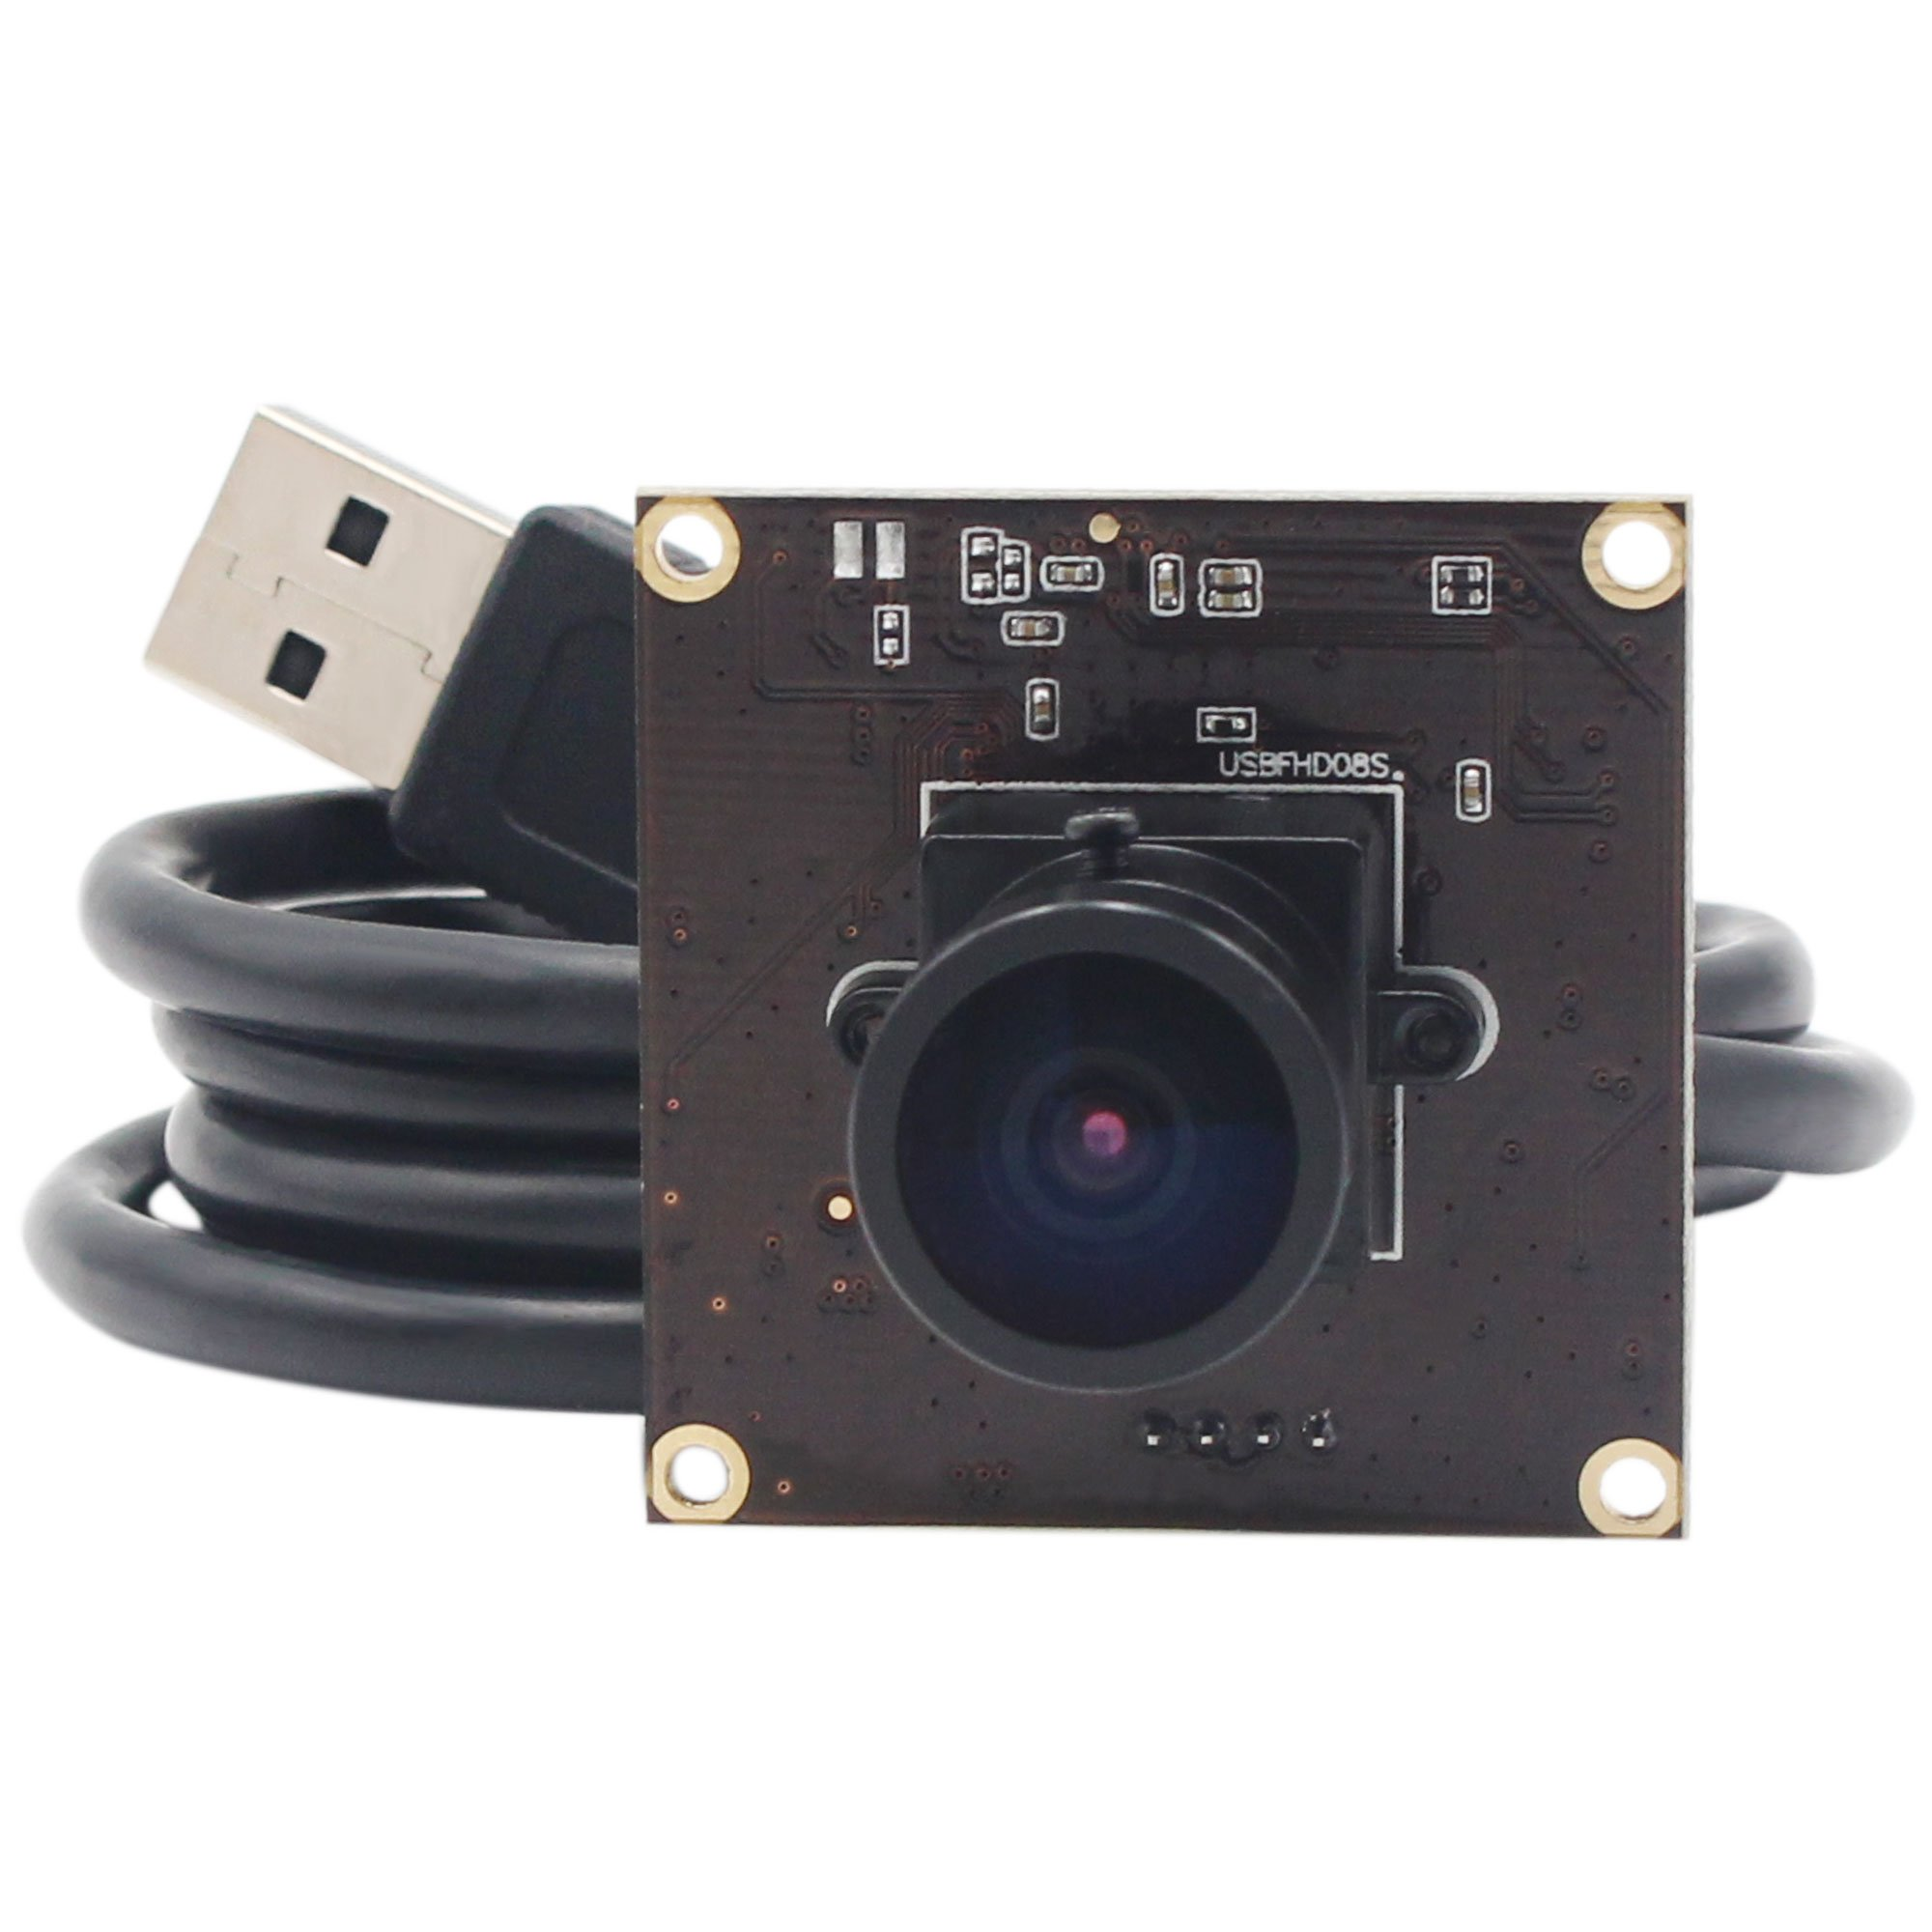 ELP USB With Camera 2.9mm Wide Angle Lens 1080P Free Driver Camera Module,260FPS@480P 120FPS&720P 60FPS@1080P High Frame Webcam,Usb Camera Linux Windows Android Mac Os